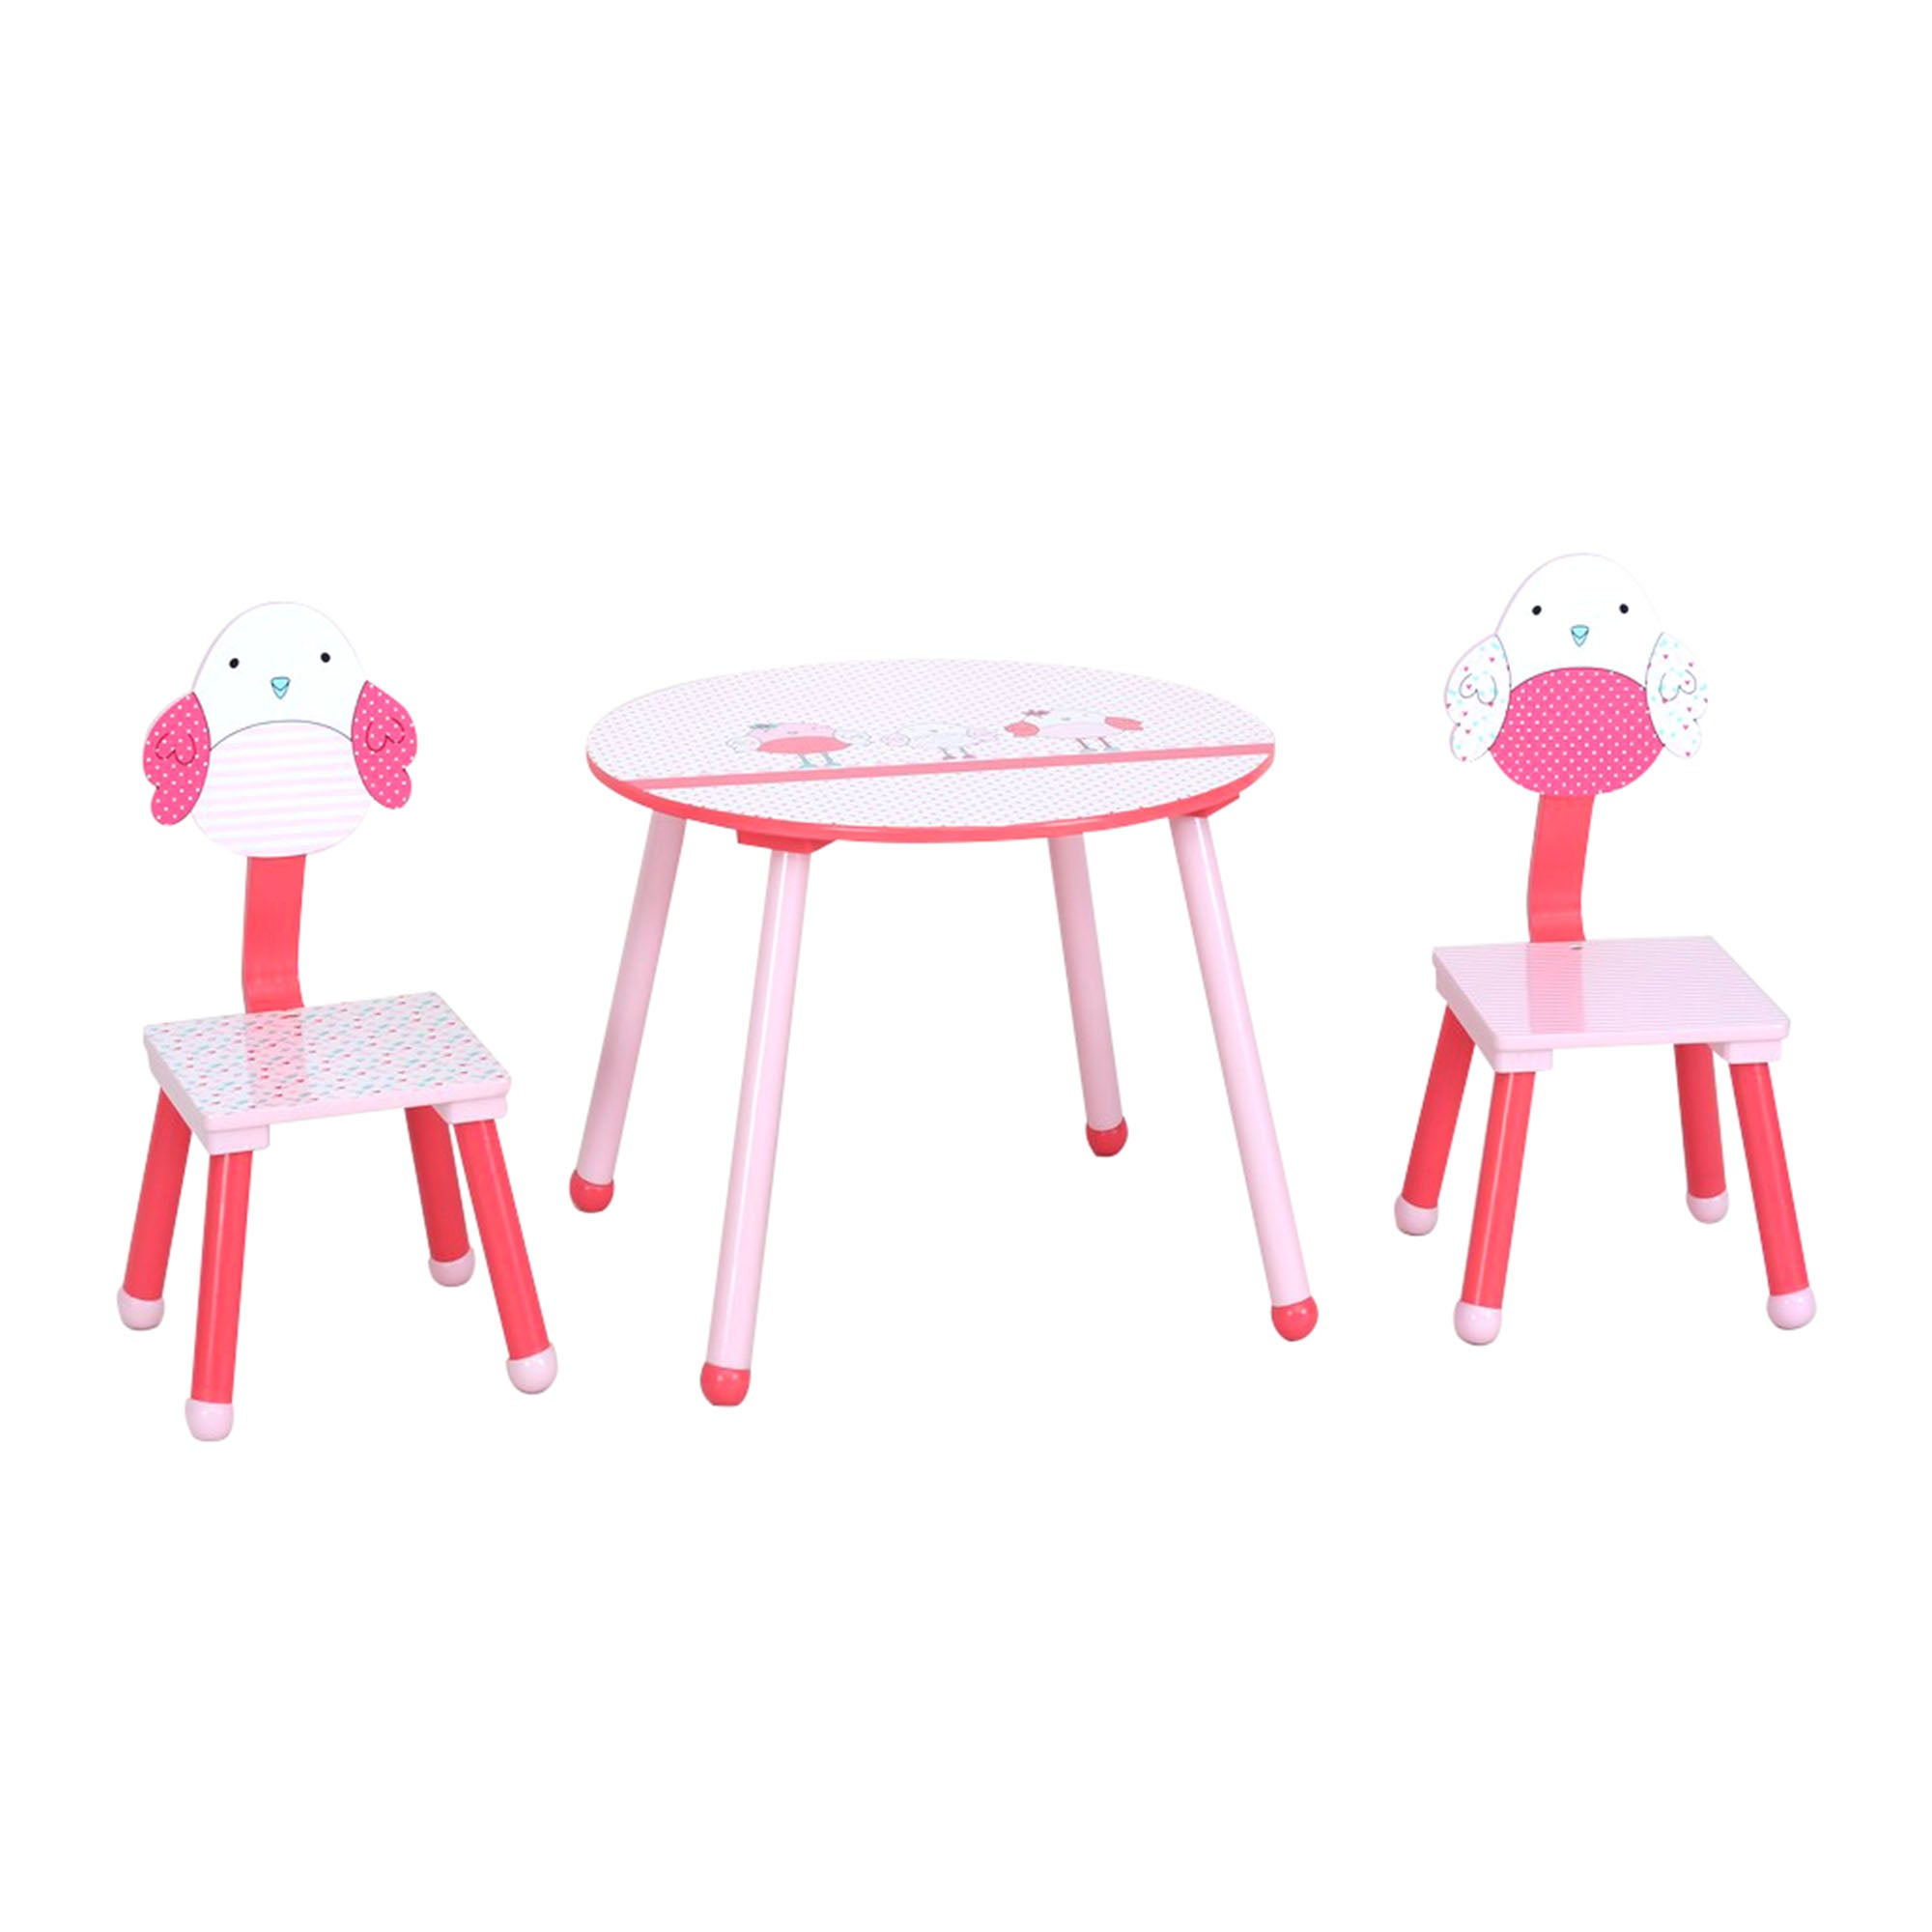 Kids Birdie Collection Playtable and Chairs